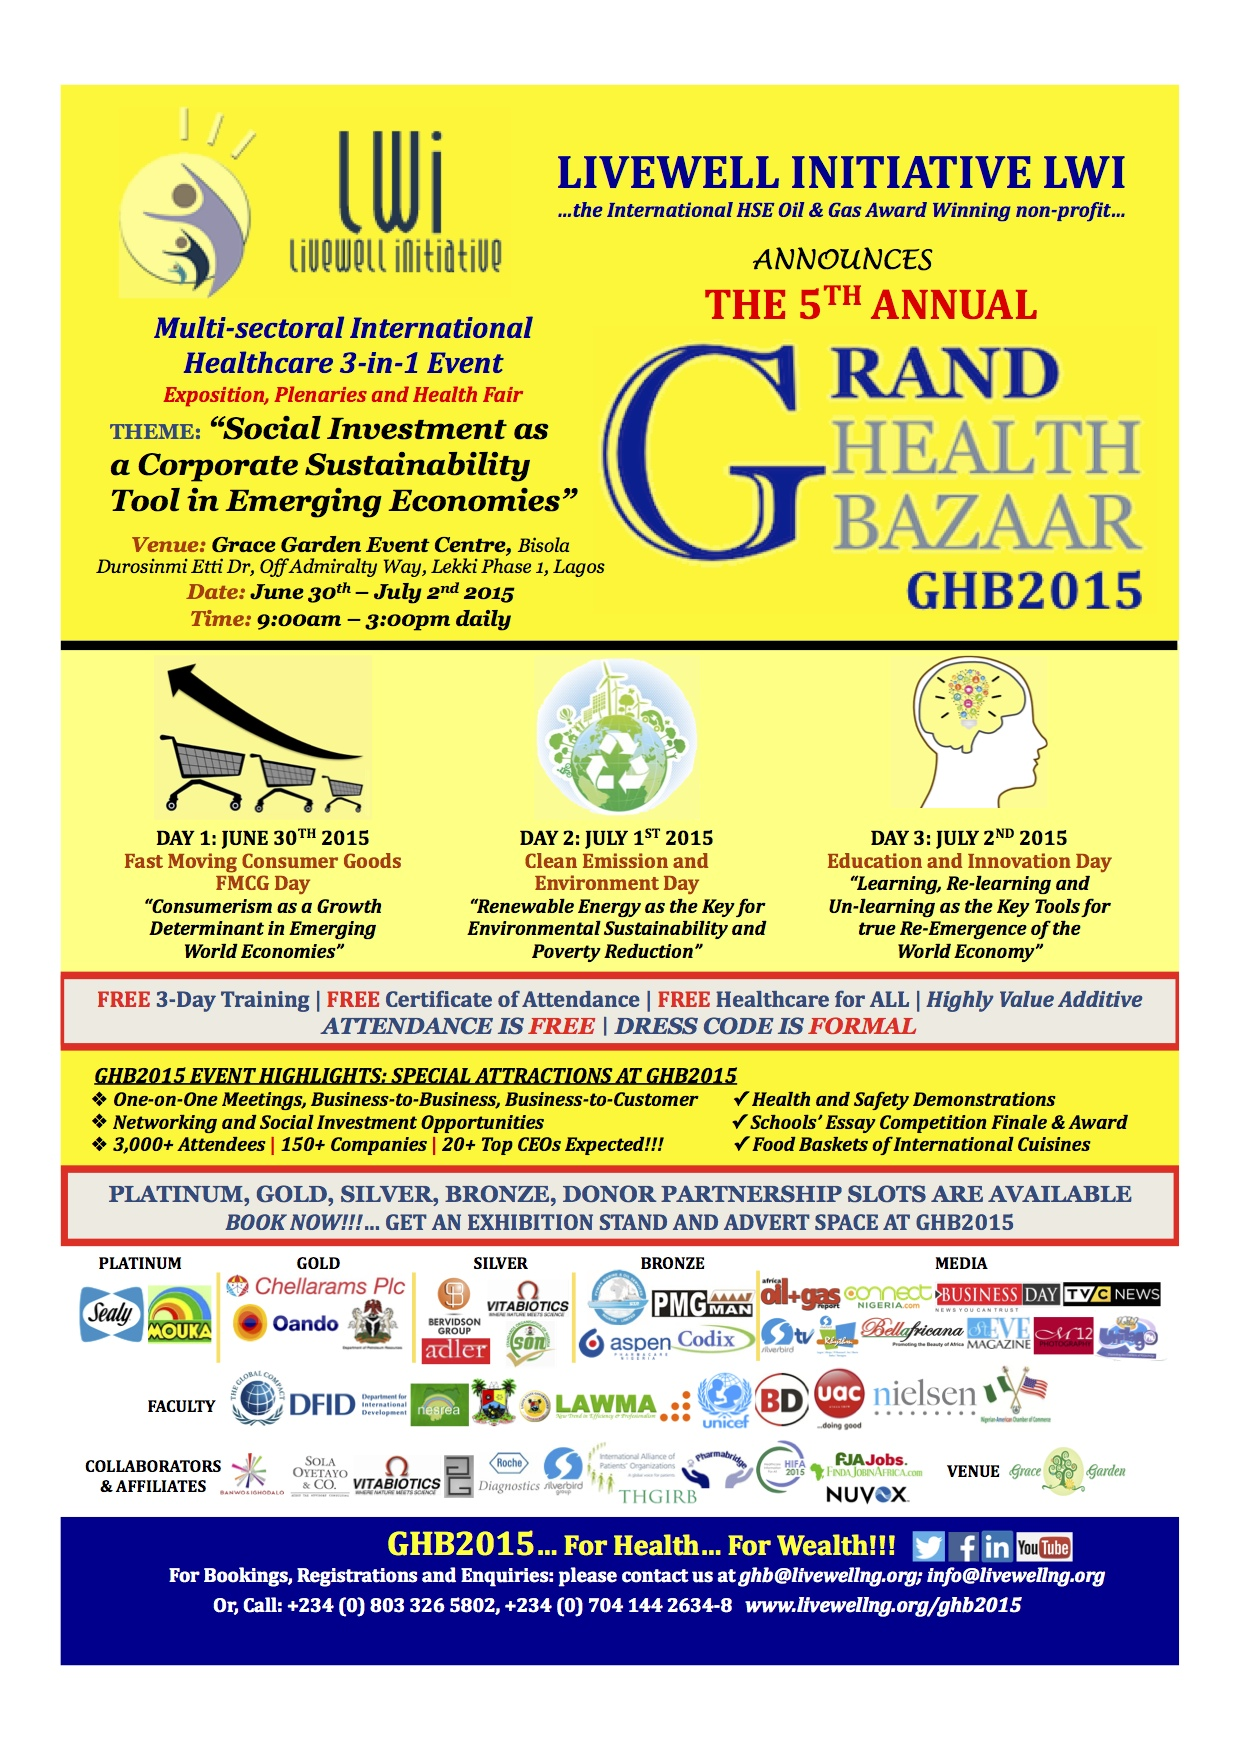 lwi ghb2015 announcement livewell initiative lwi the main theme for ghb2015 is social investment as a corporate sustainability tool in emerging economies